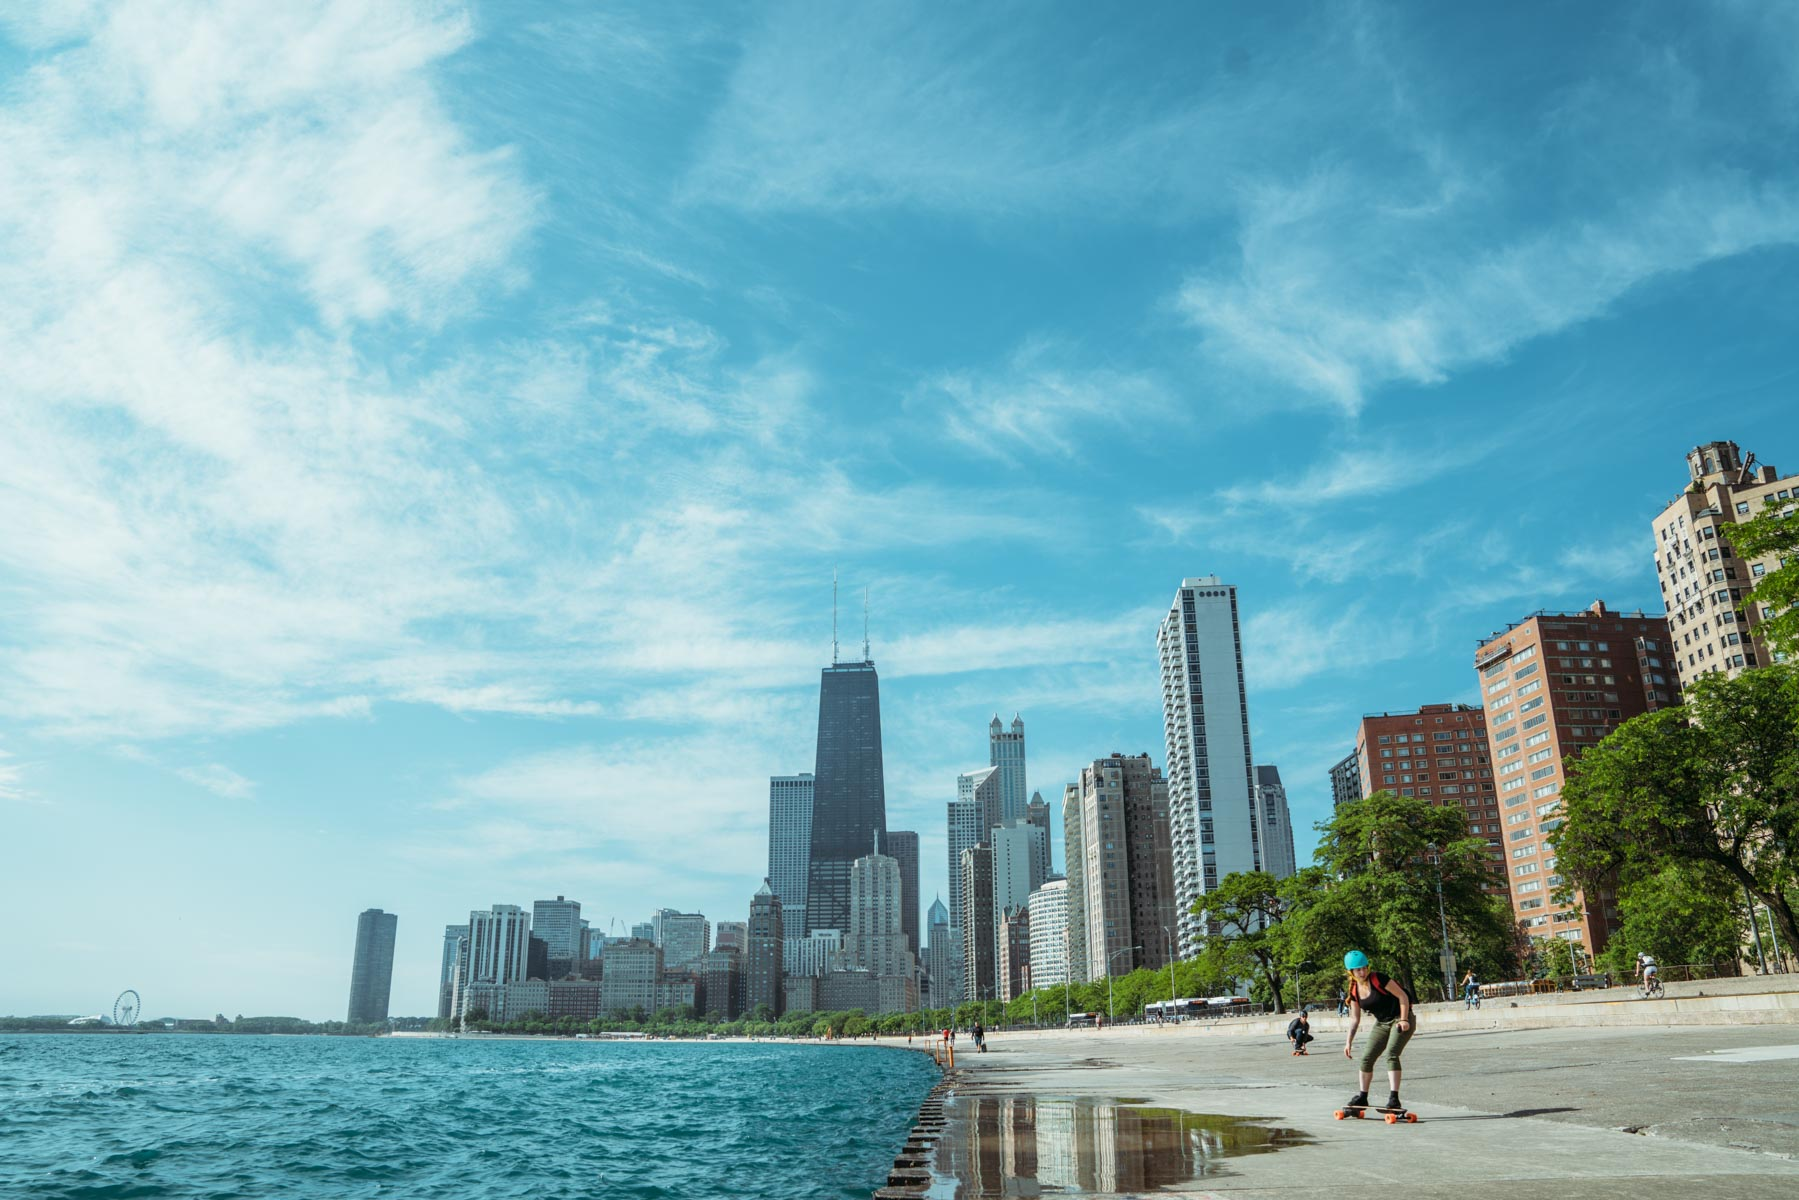 kyson-dana-boosted-boards-chicago-7.jpg